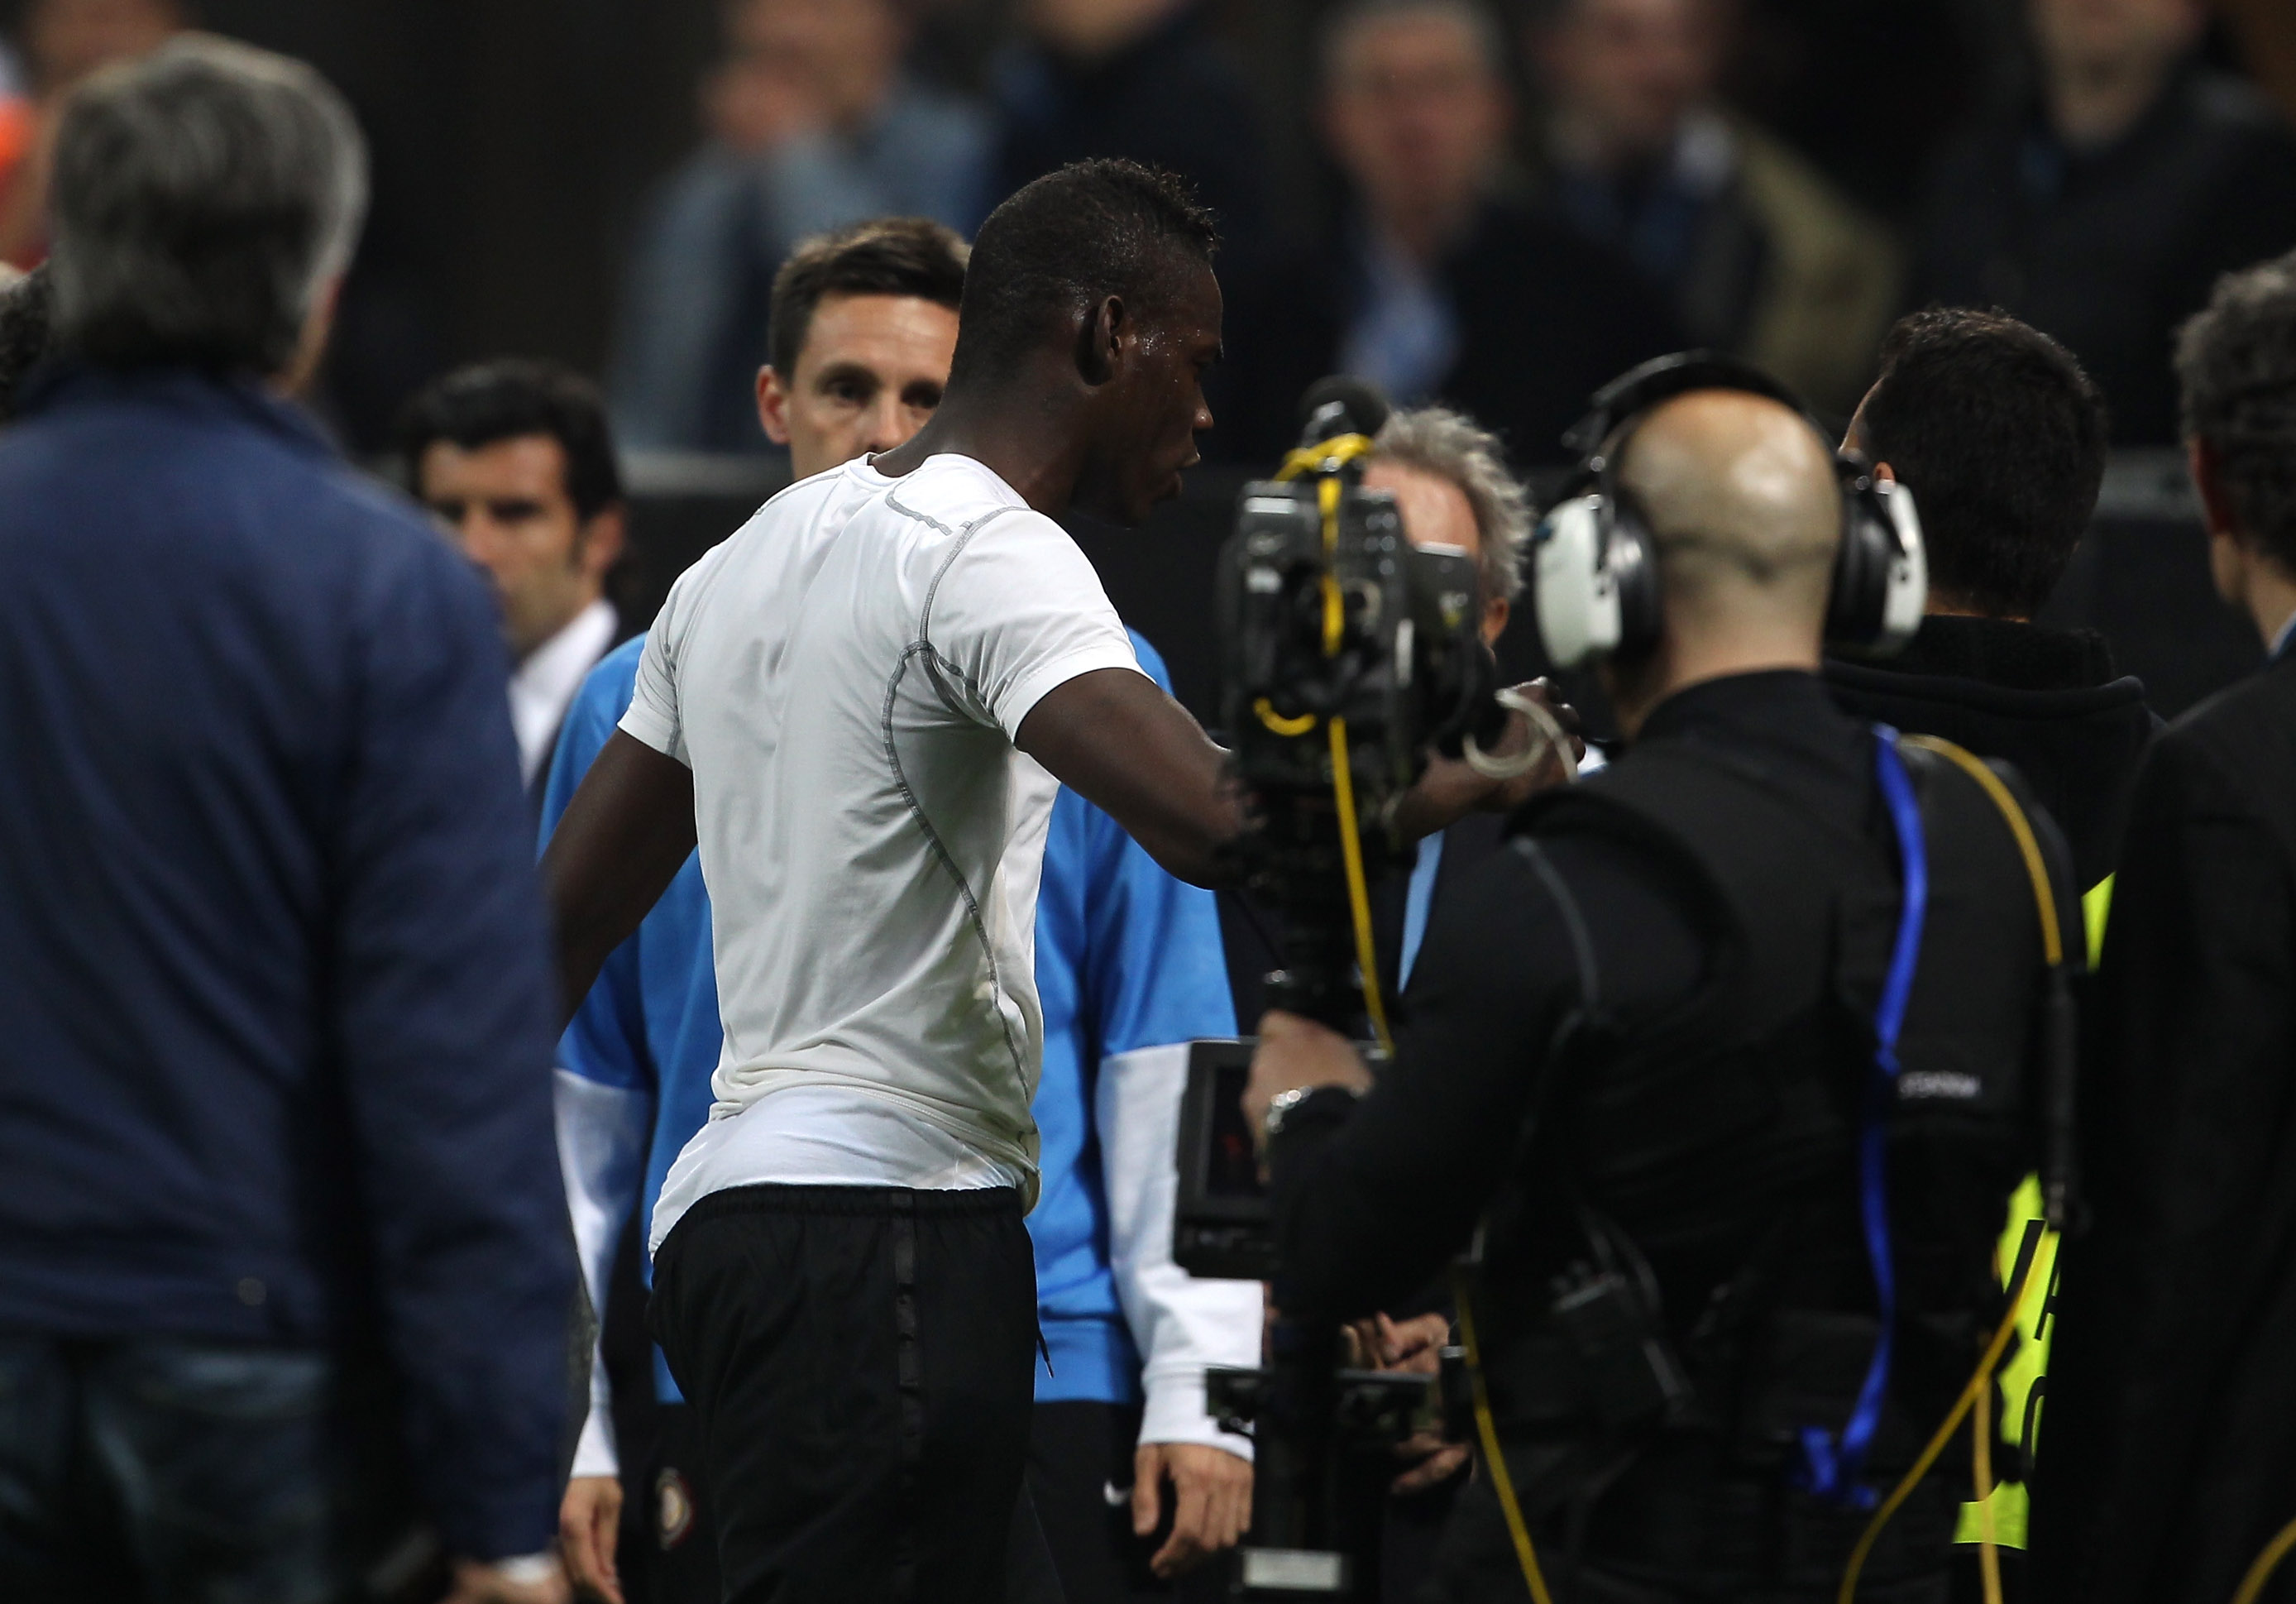 Balotelli storms off the pitch